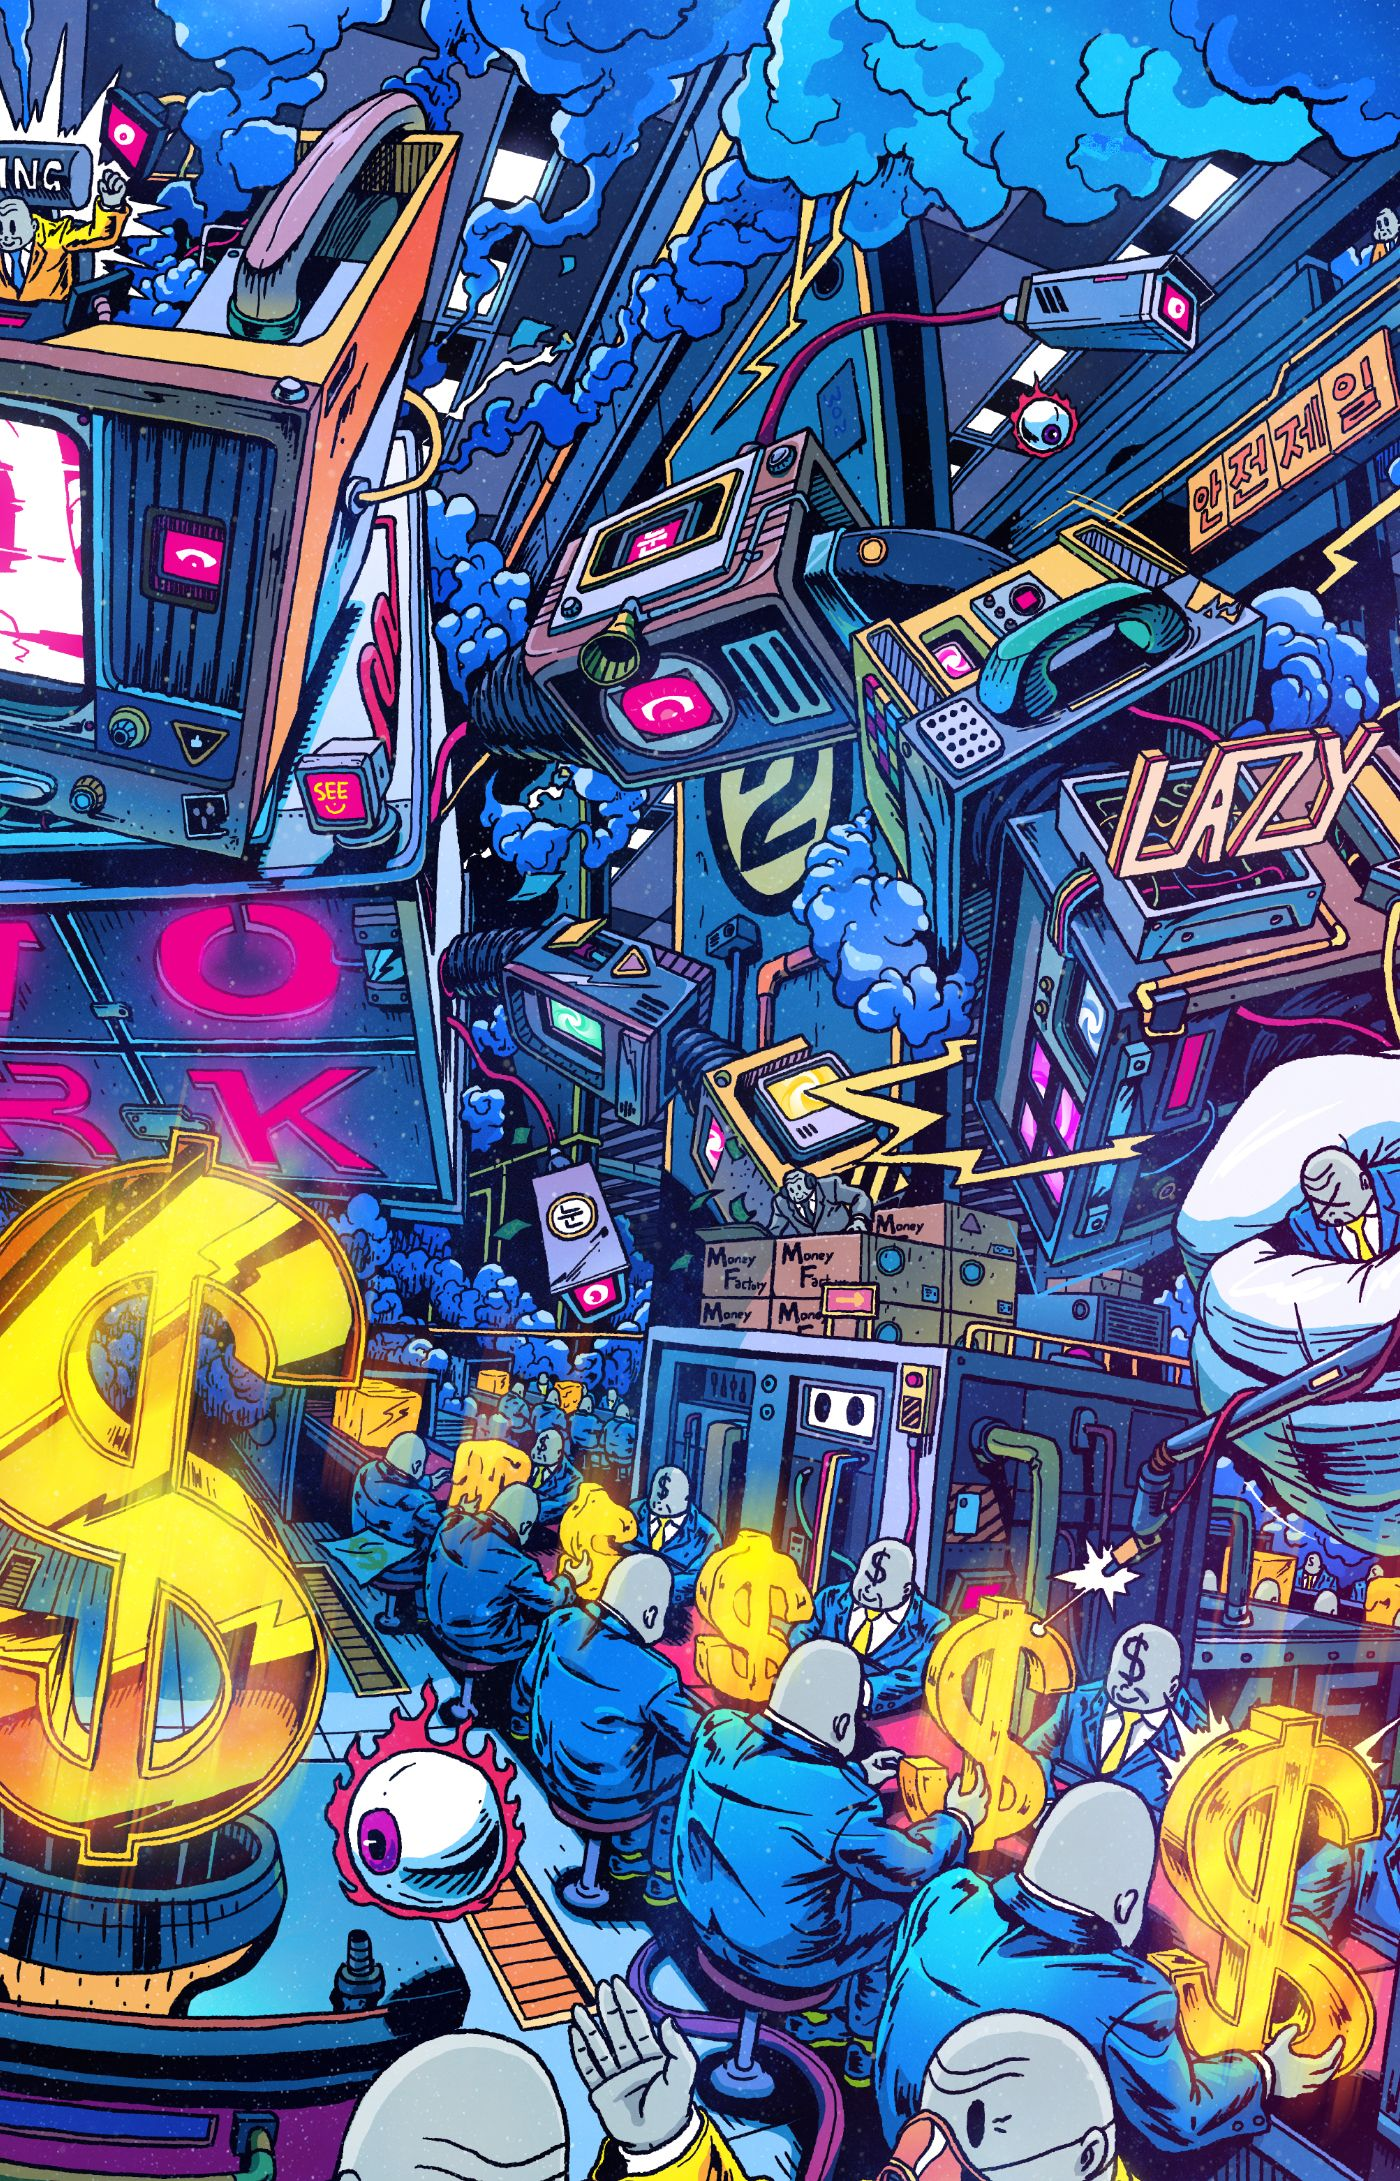 This Is The Series Of Hello Mr Misang Mr Misang Is Traveling Odd Worlds With Pop Art Wallpaper Art Wallpaper Street Art Graffiti Galaxy psychedelic dope wallpaper